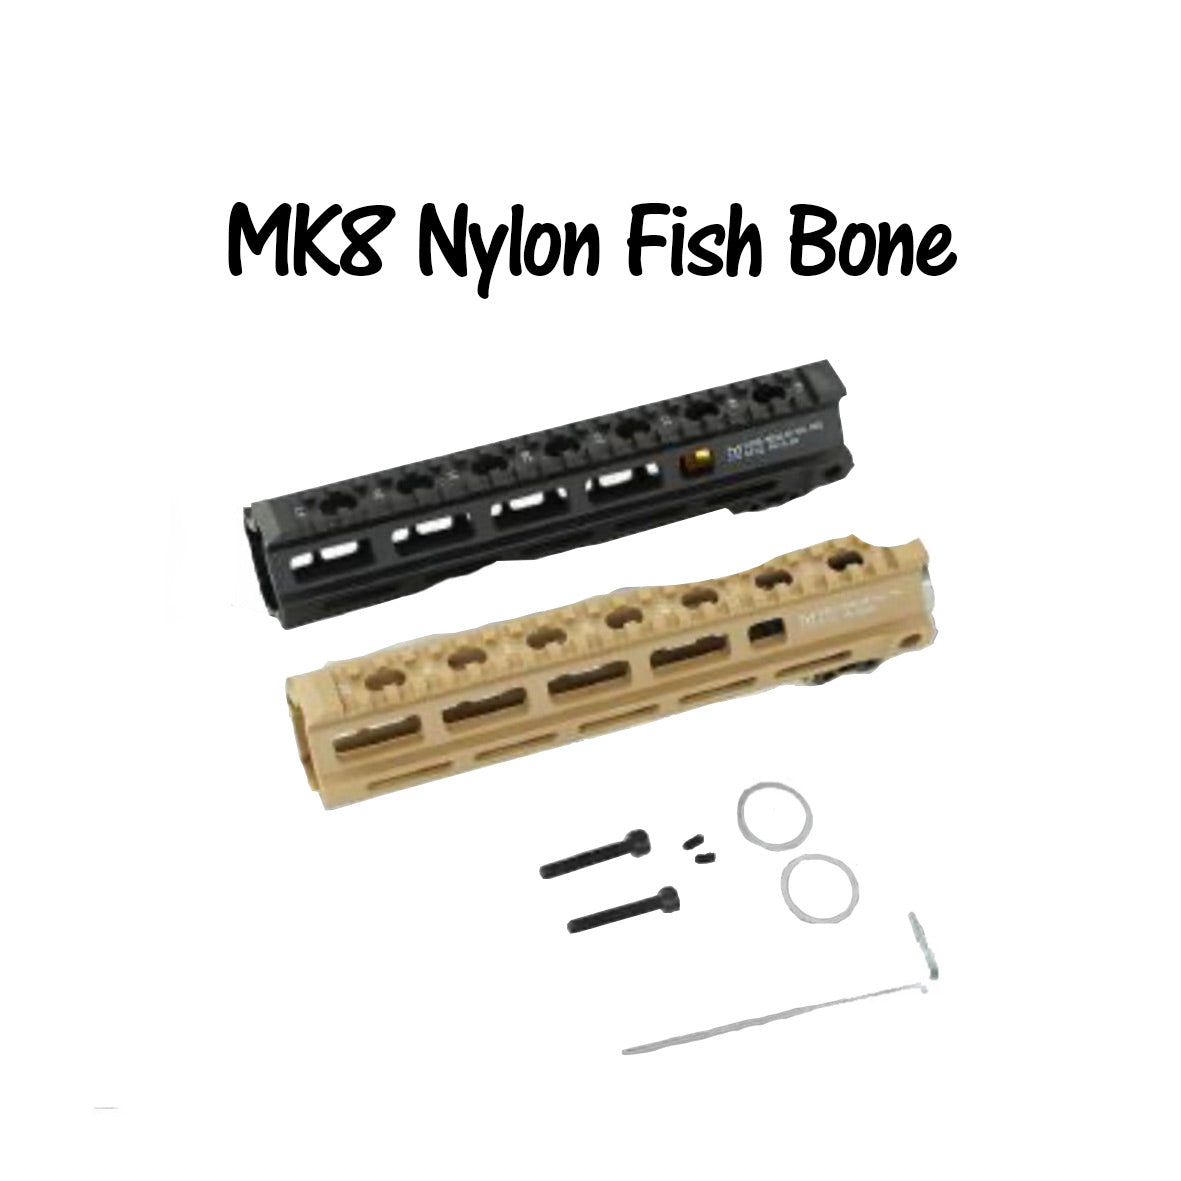 MK8 nylon fish bone